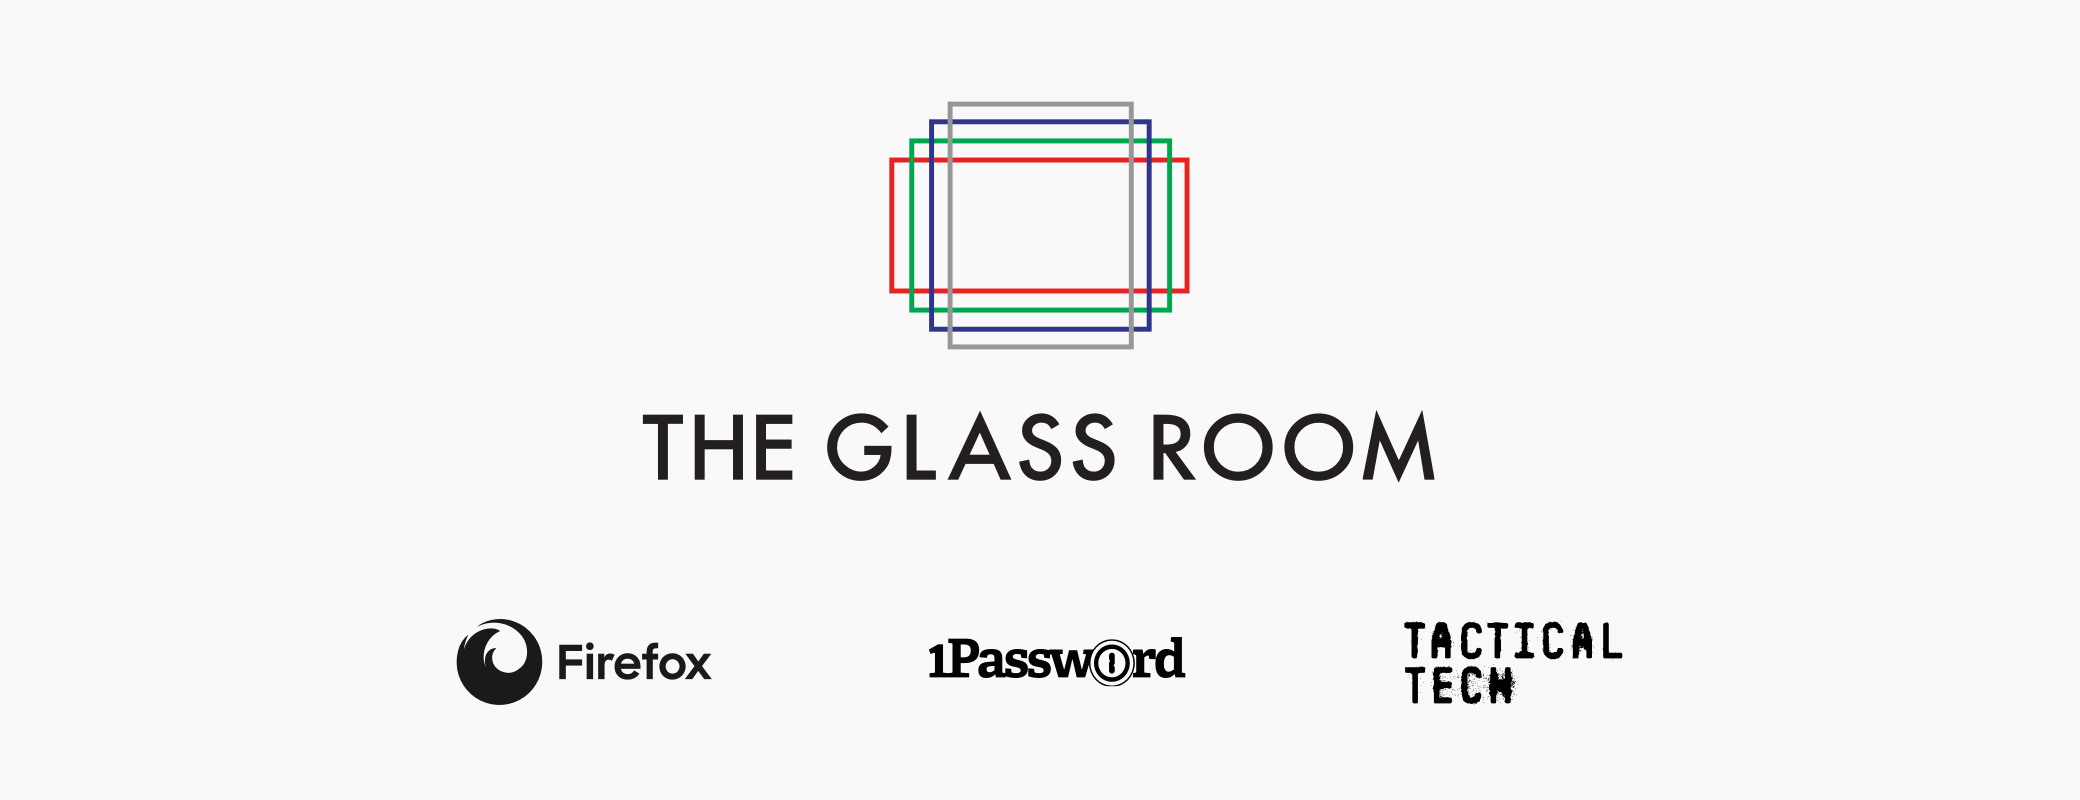 1Password and Mozilla at The Glass Room exhibition